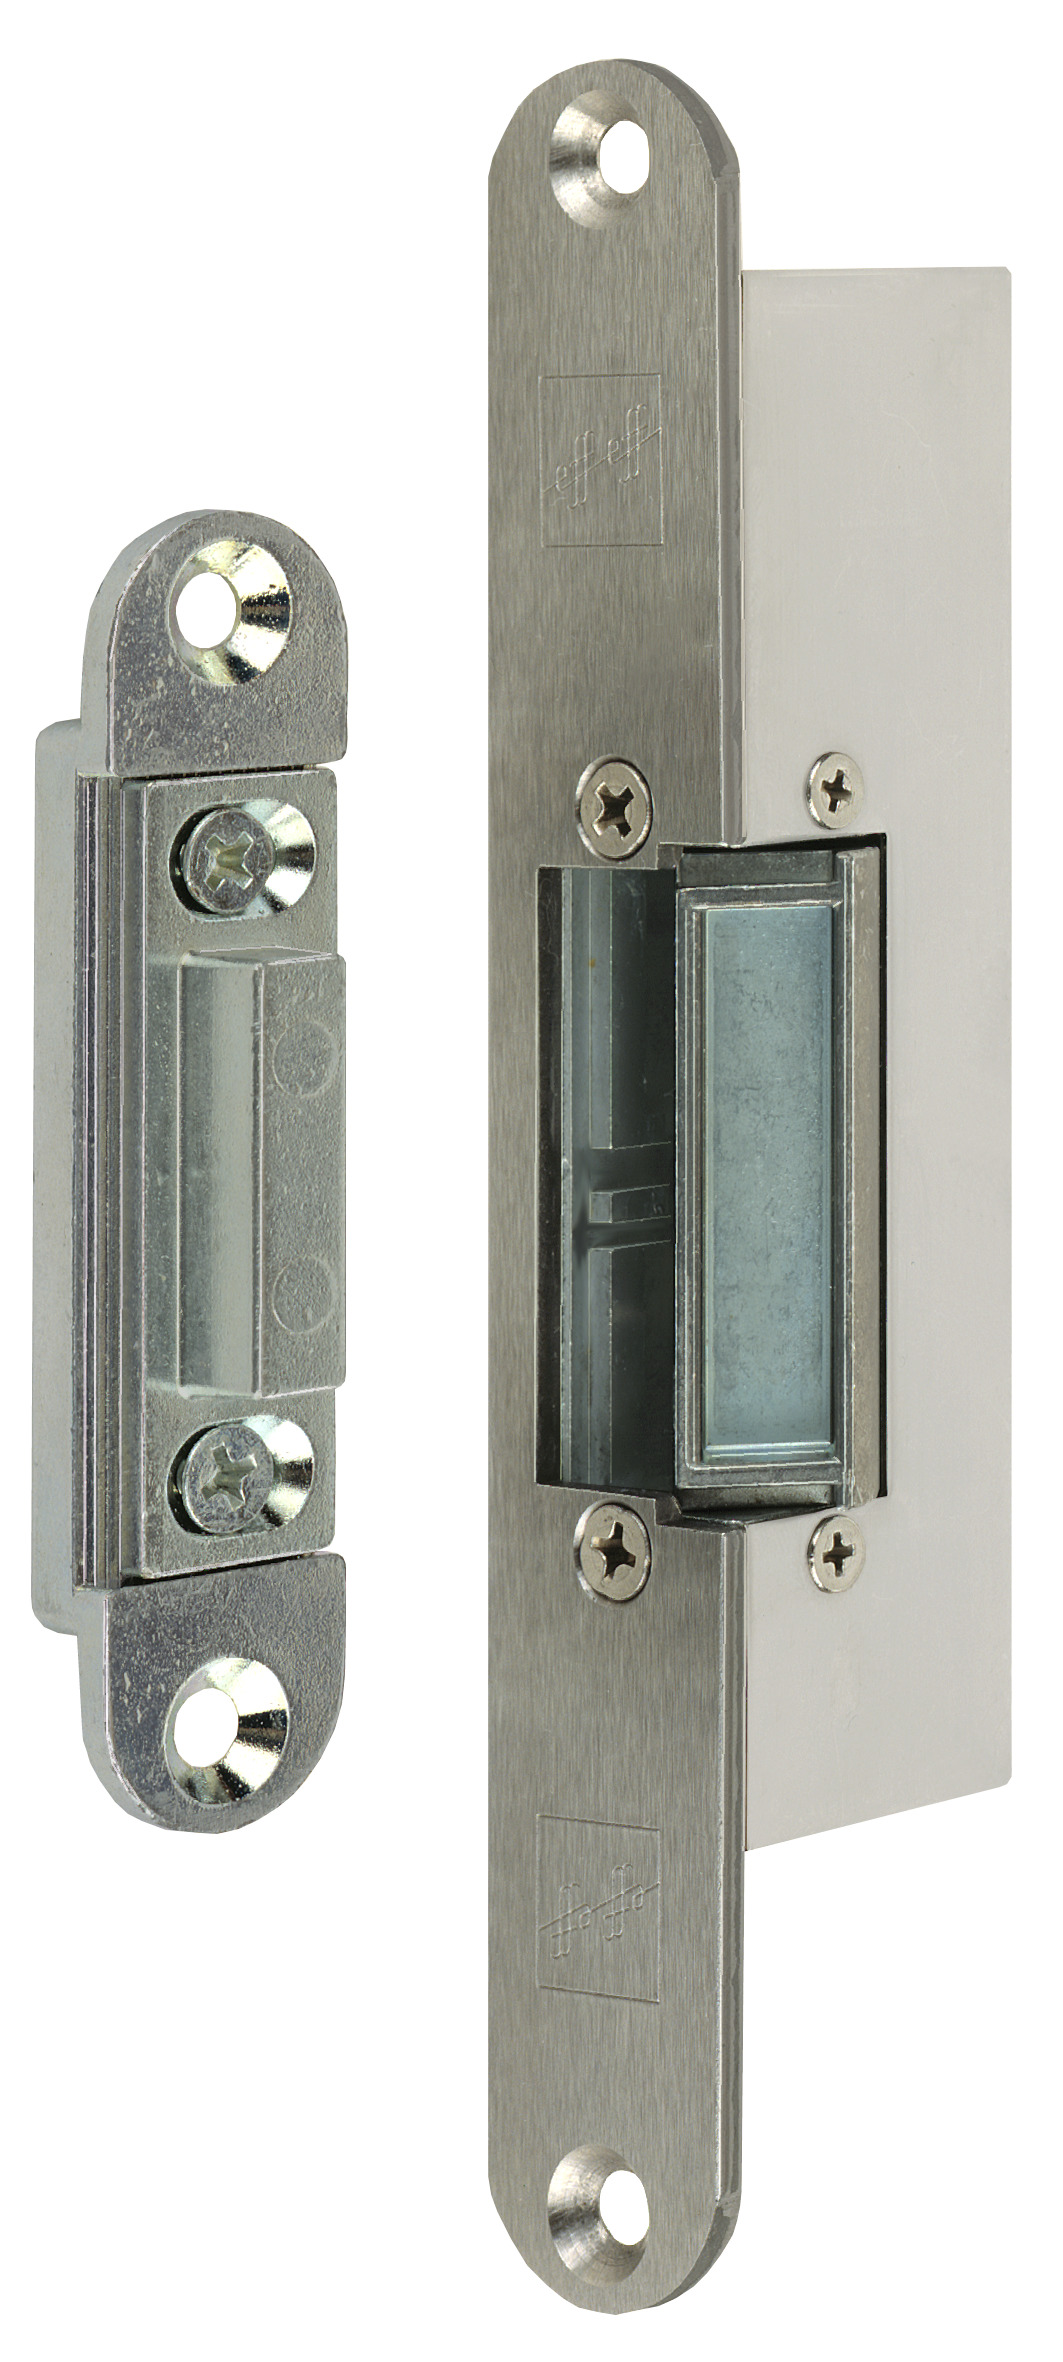 mode electric lock security access control no edl secure for systems door electrical wood cover fail sl locks metal index strike